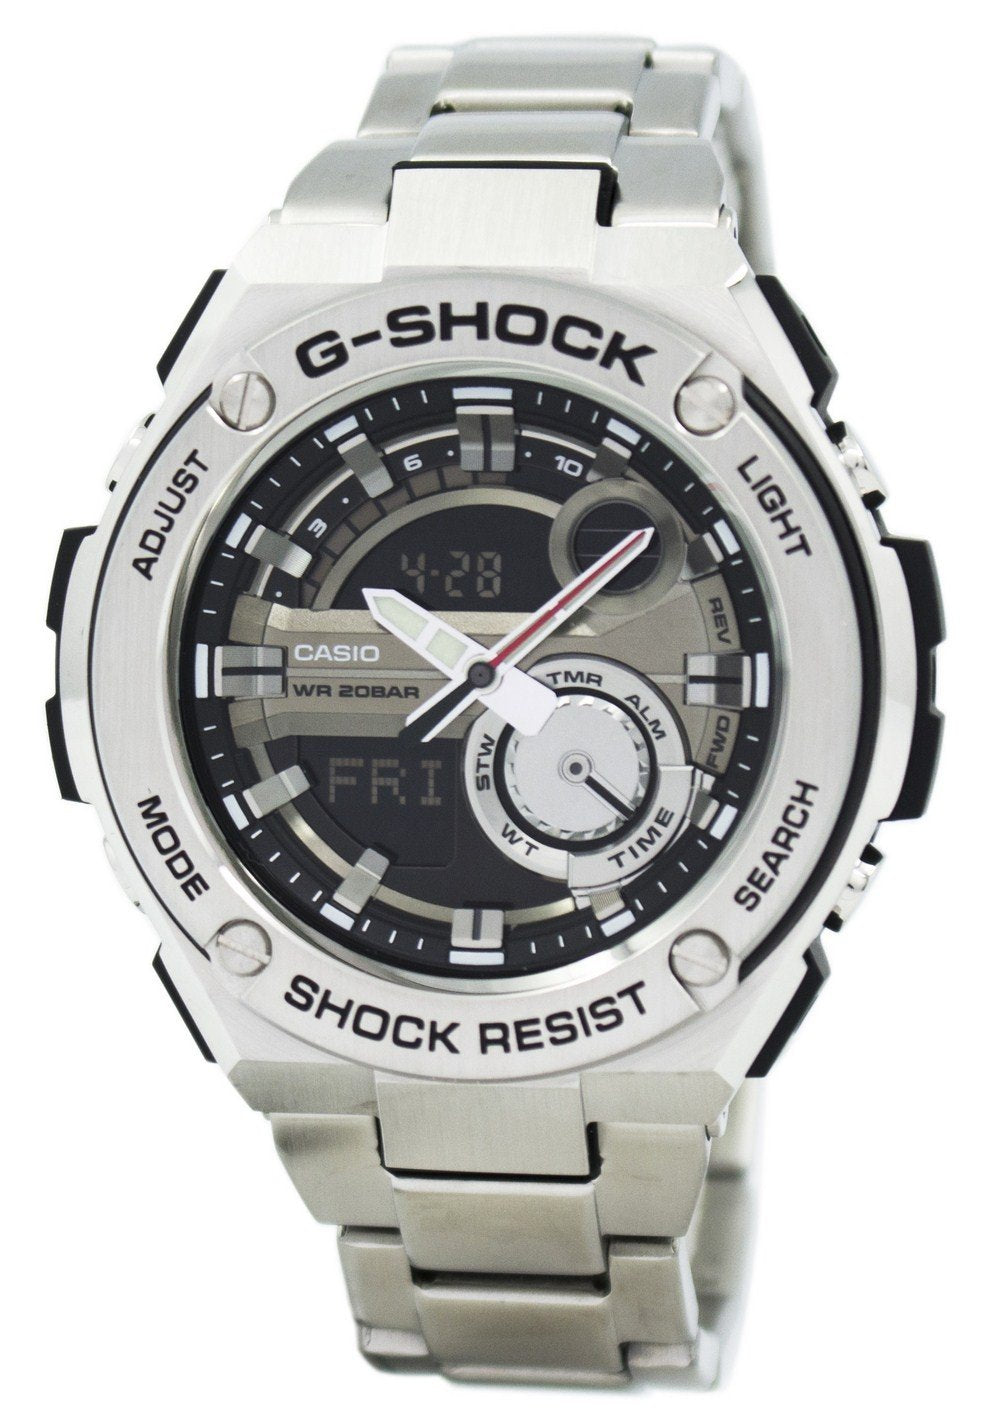 Casio G-Shock G-Steel Analog Digital World Time GST-210D-1A GST210D-1A Men's Watch